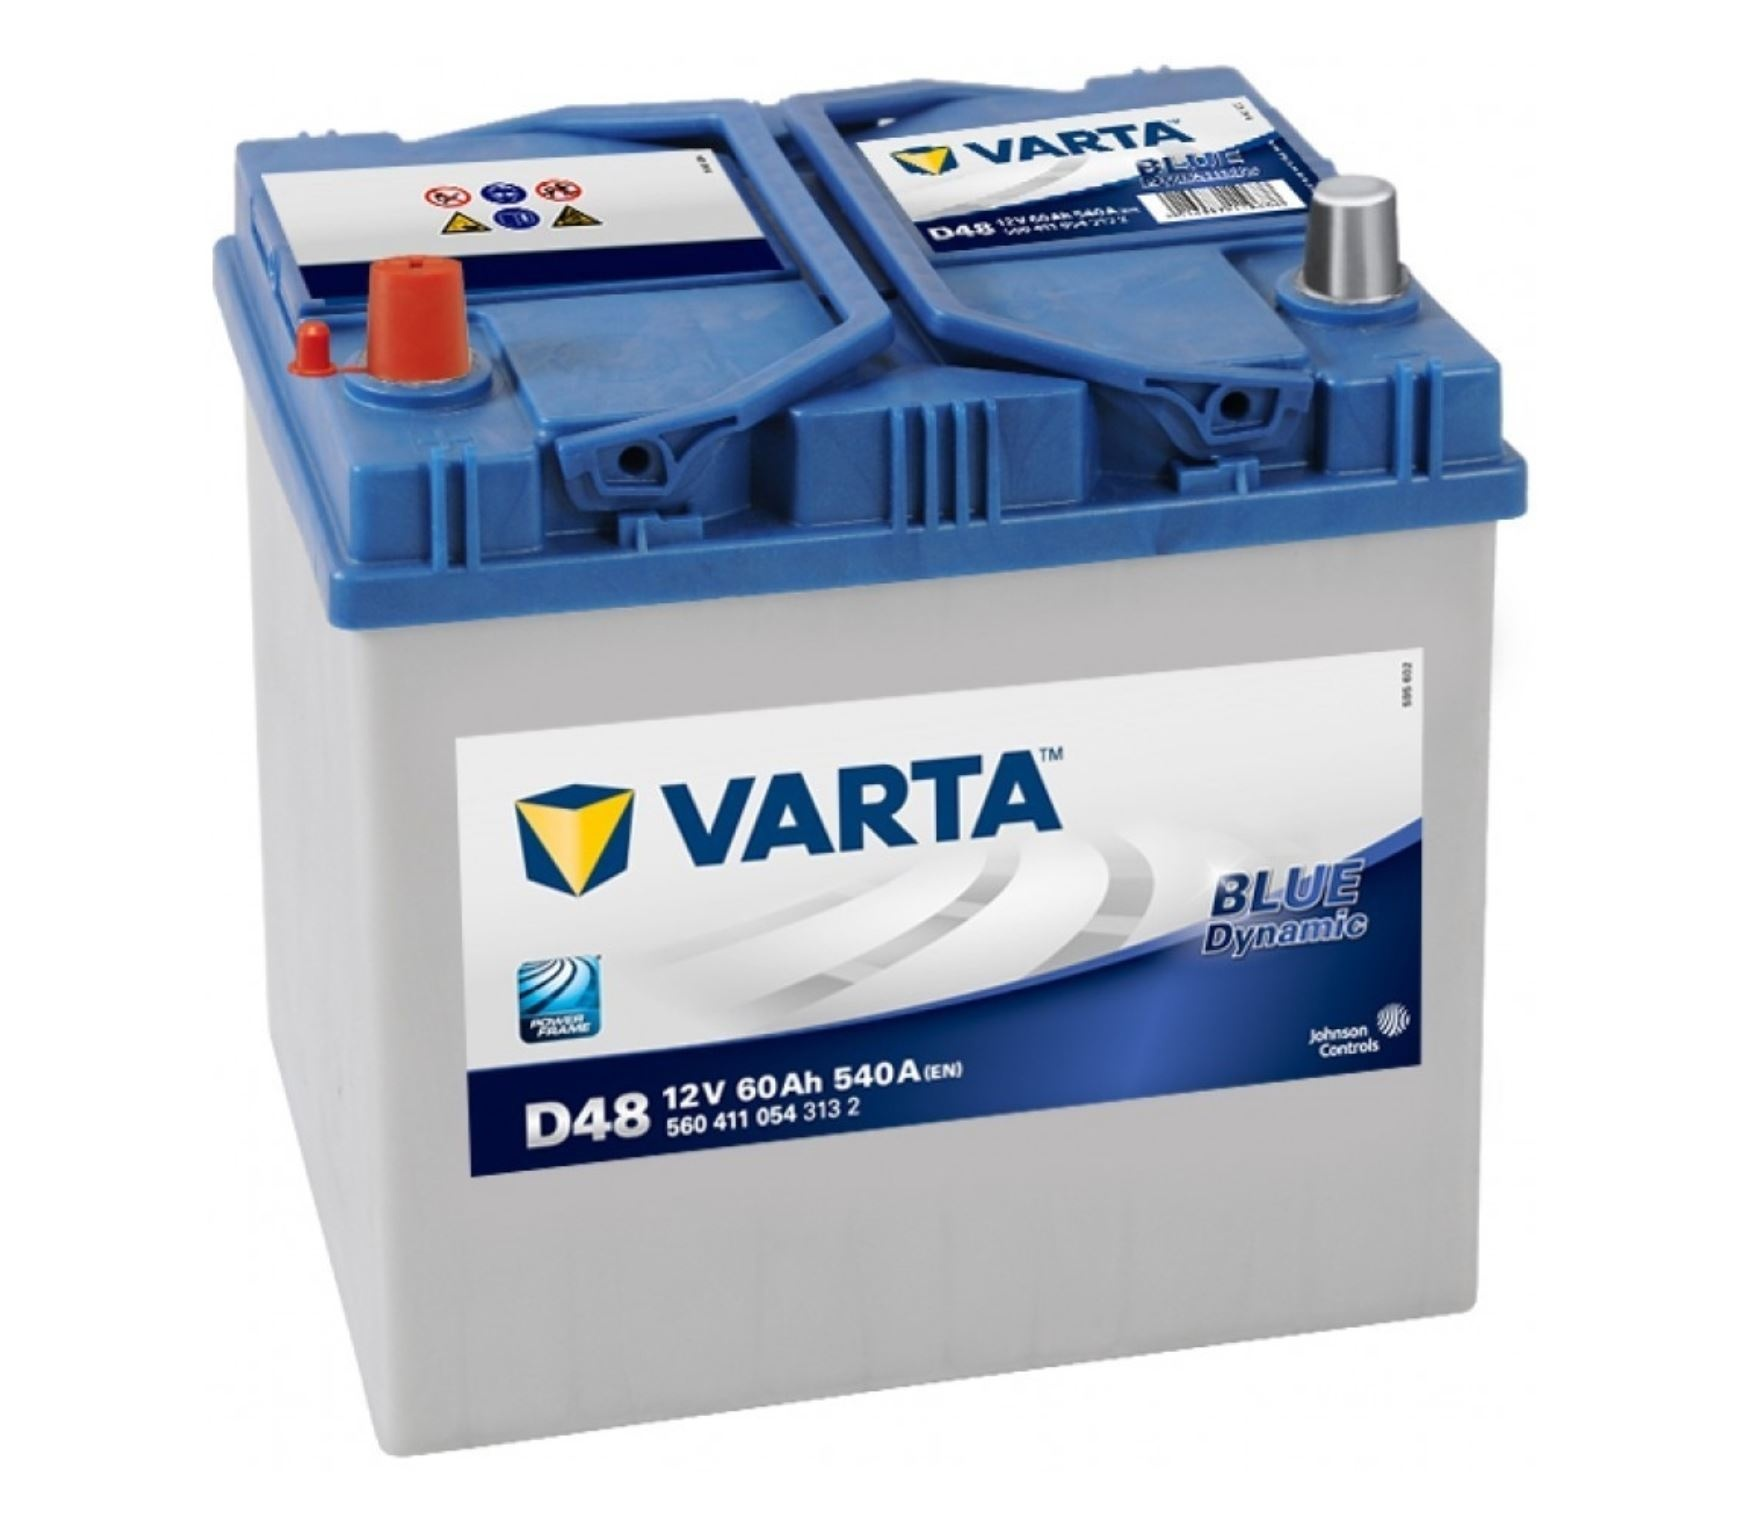 Varta Blue Dynamic 12V 60Ah 540A - PLUS vlevo D48